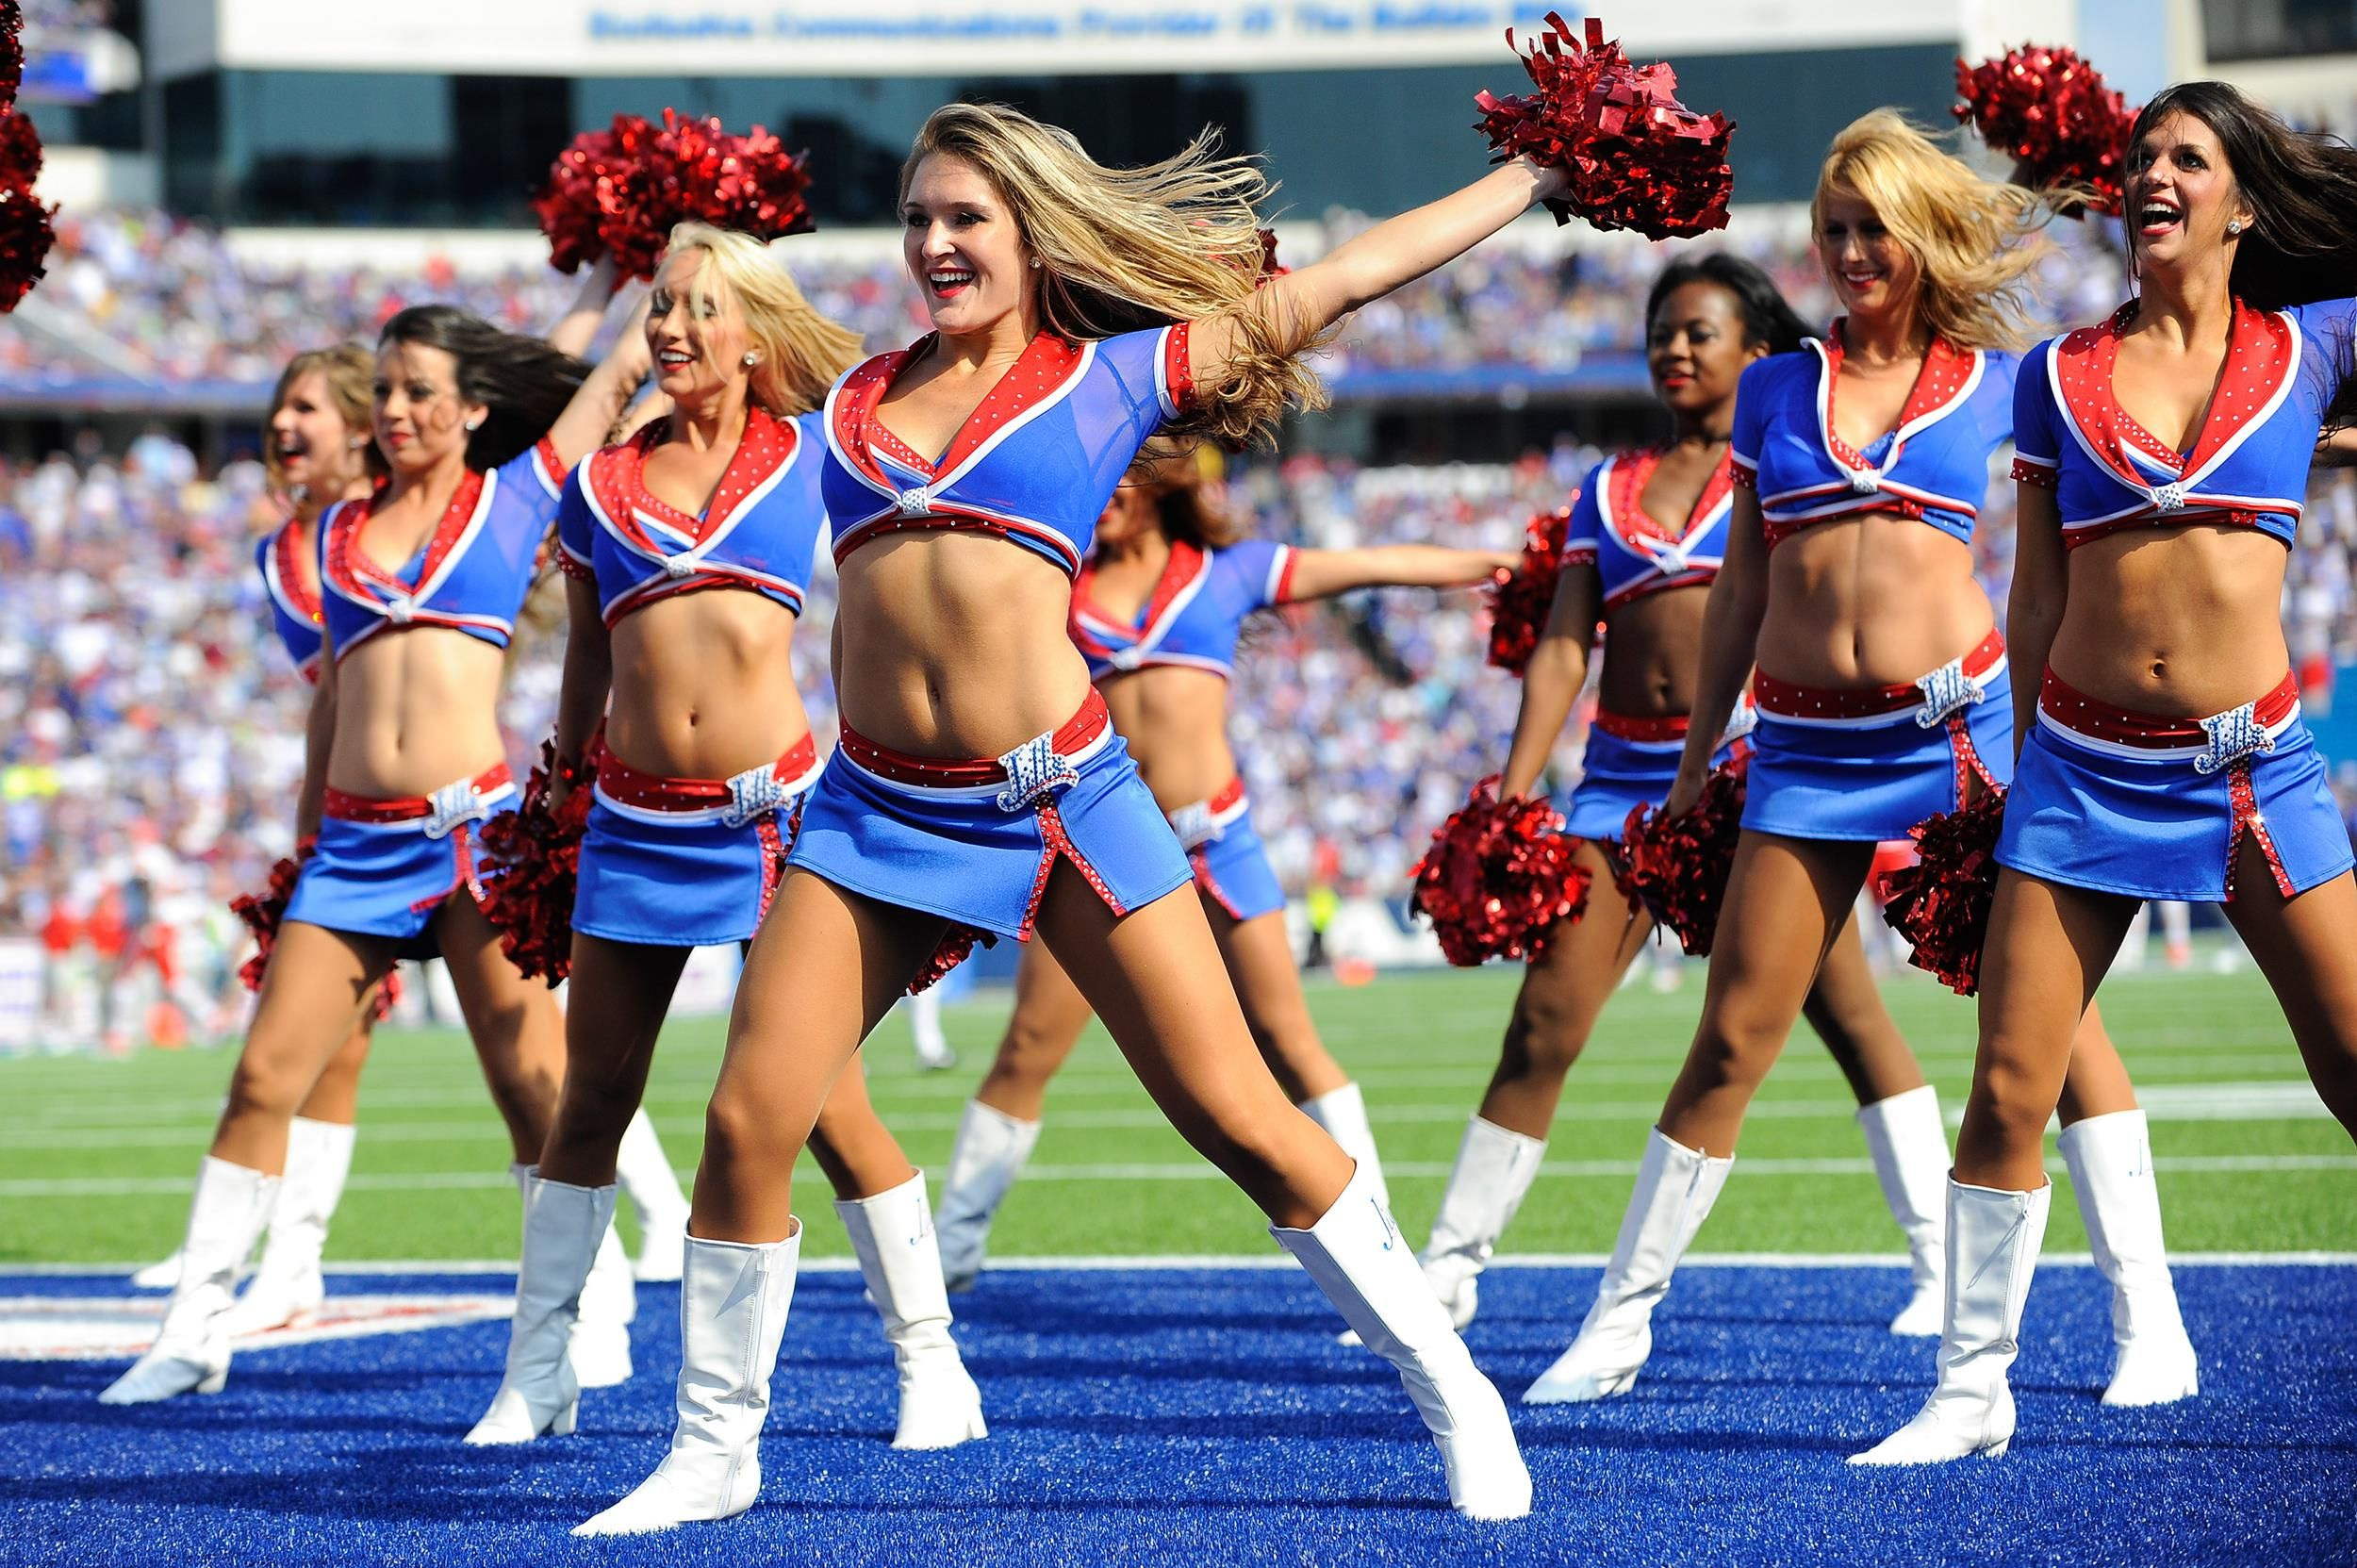 Buffalo Bills Nfl cheerleaders, Football cheerleaders